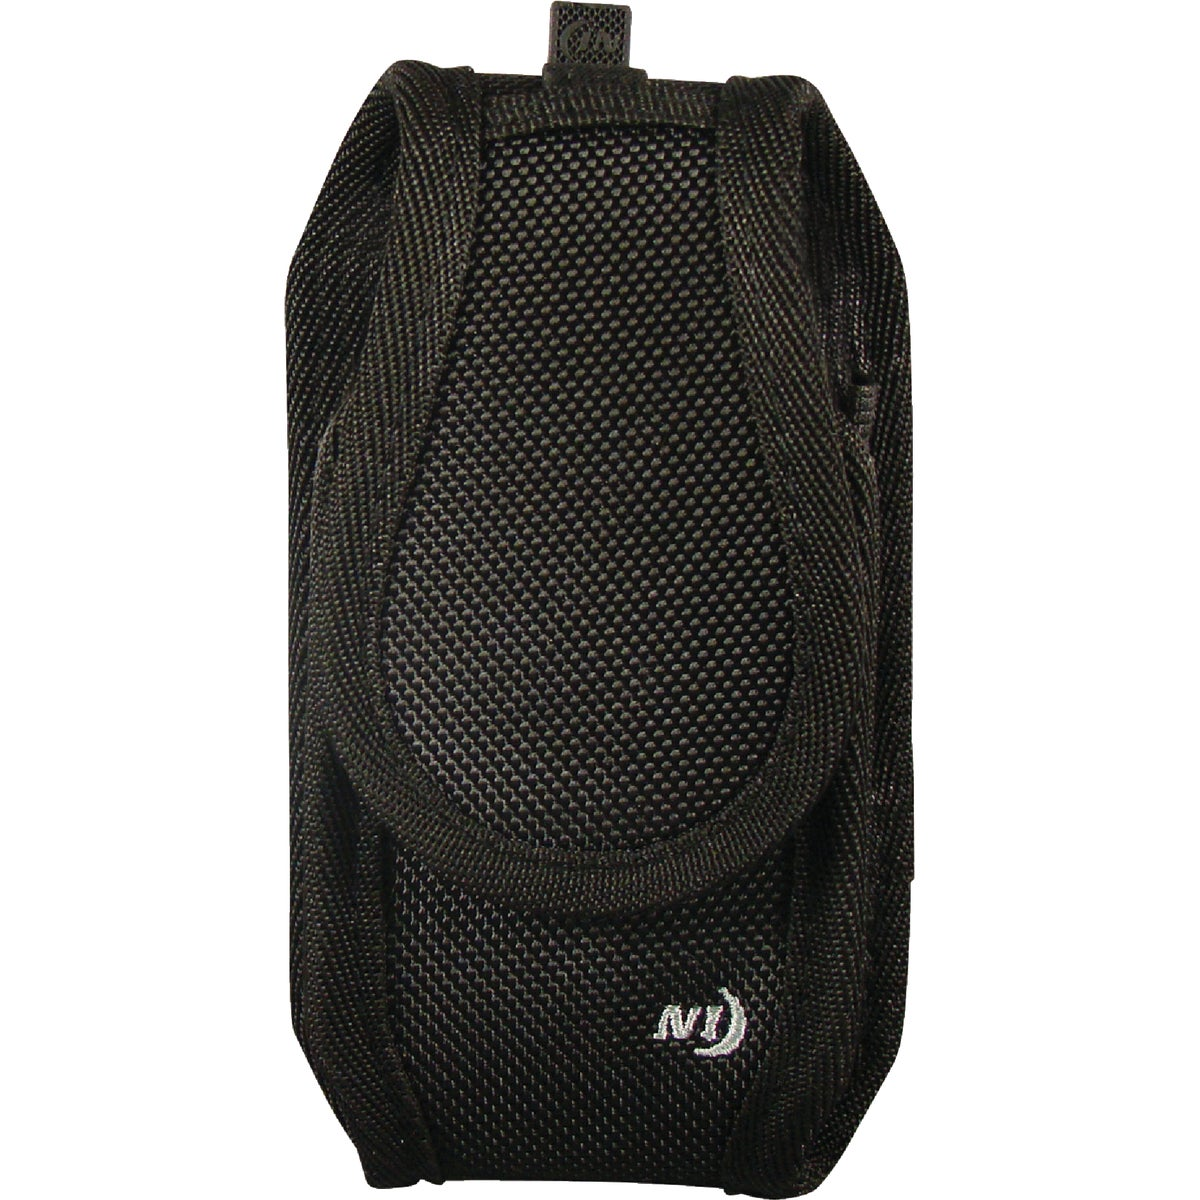 TALL BLK CARGO CLIP CASE - CCCT-03-01 by Nite Ize   Rcp